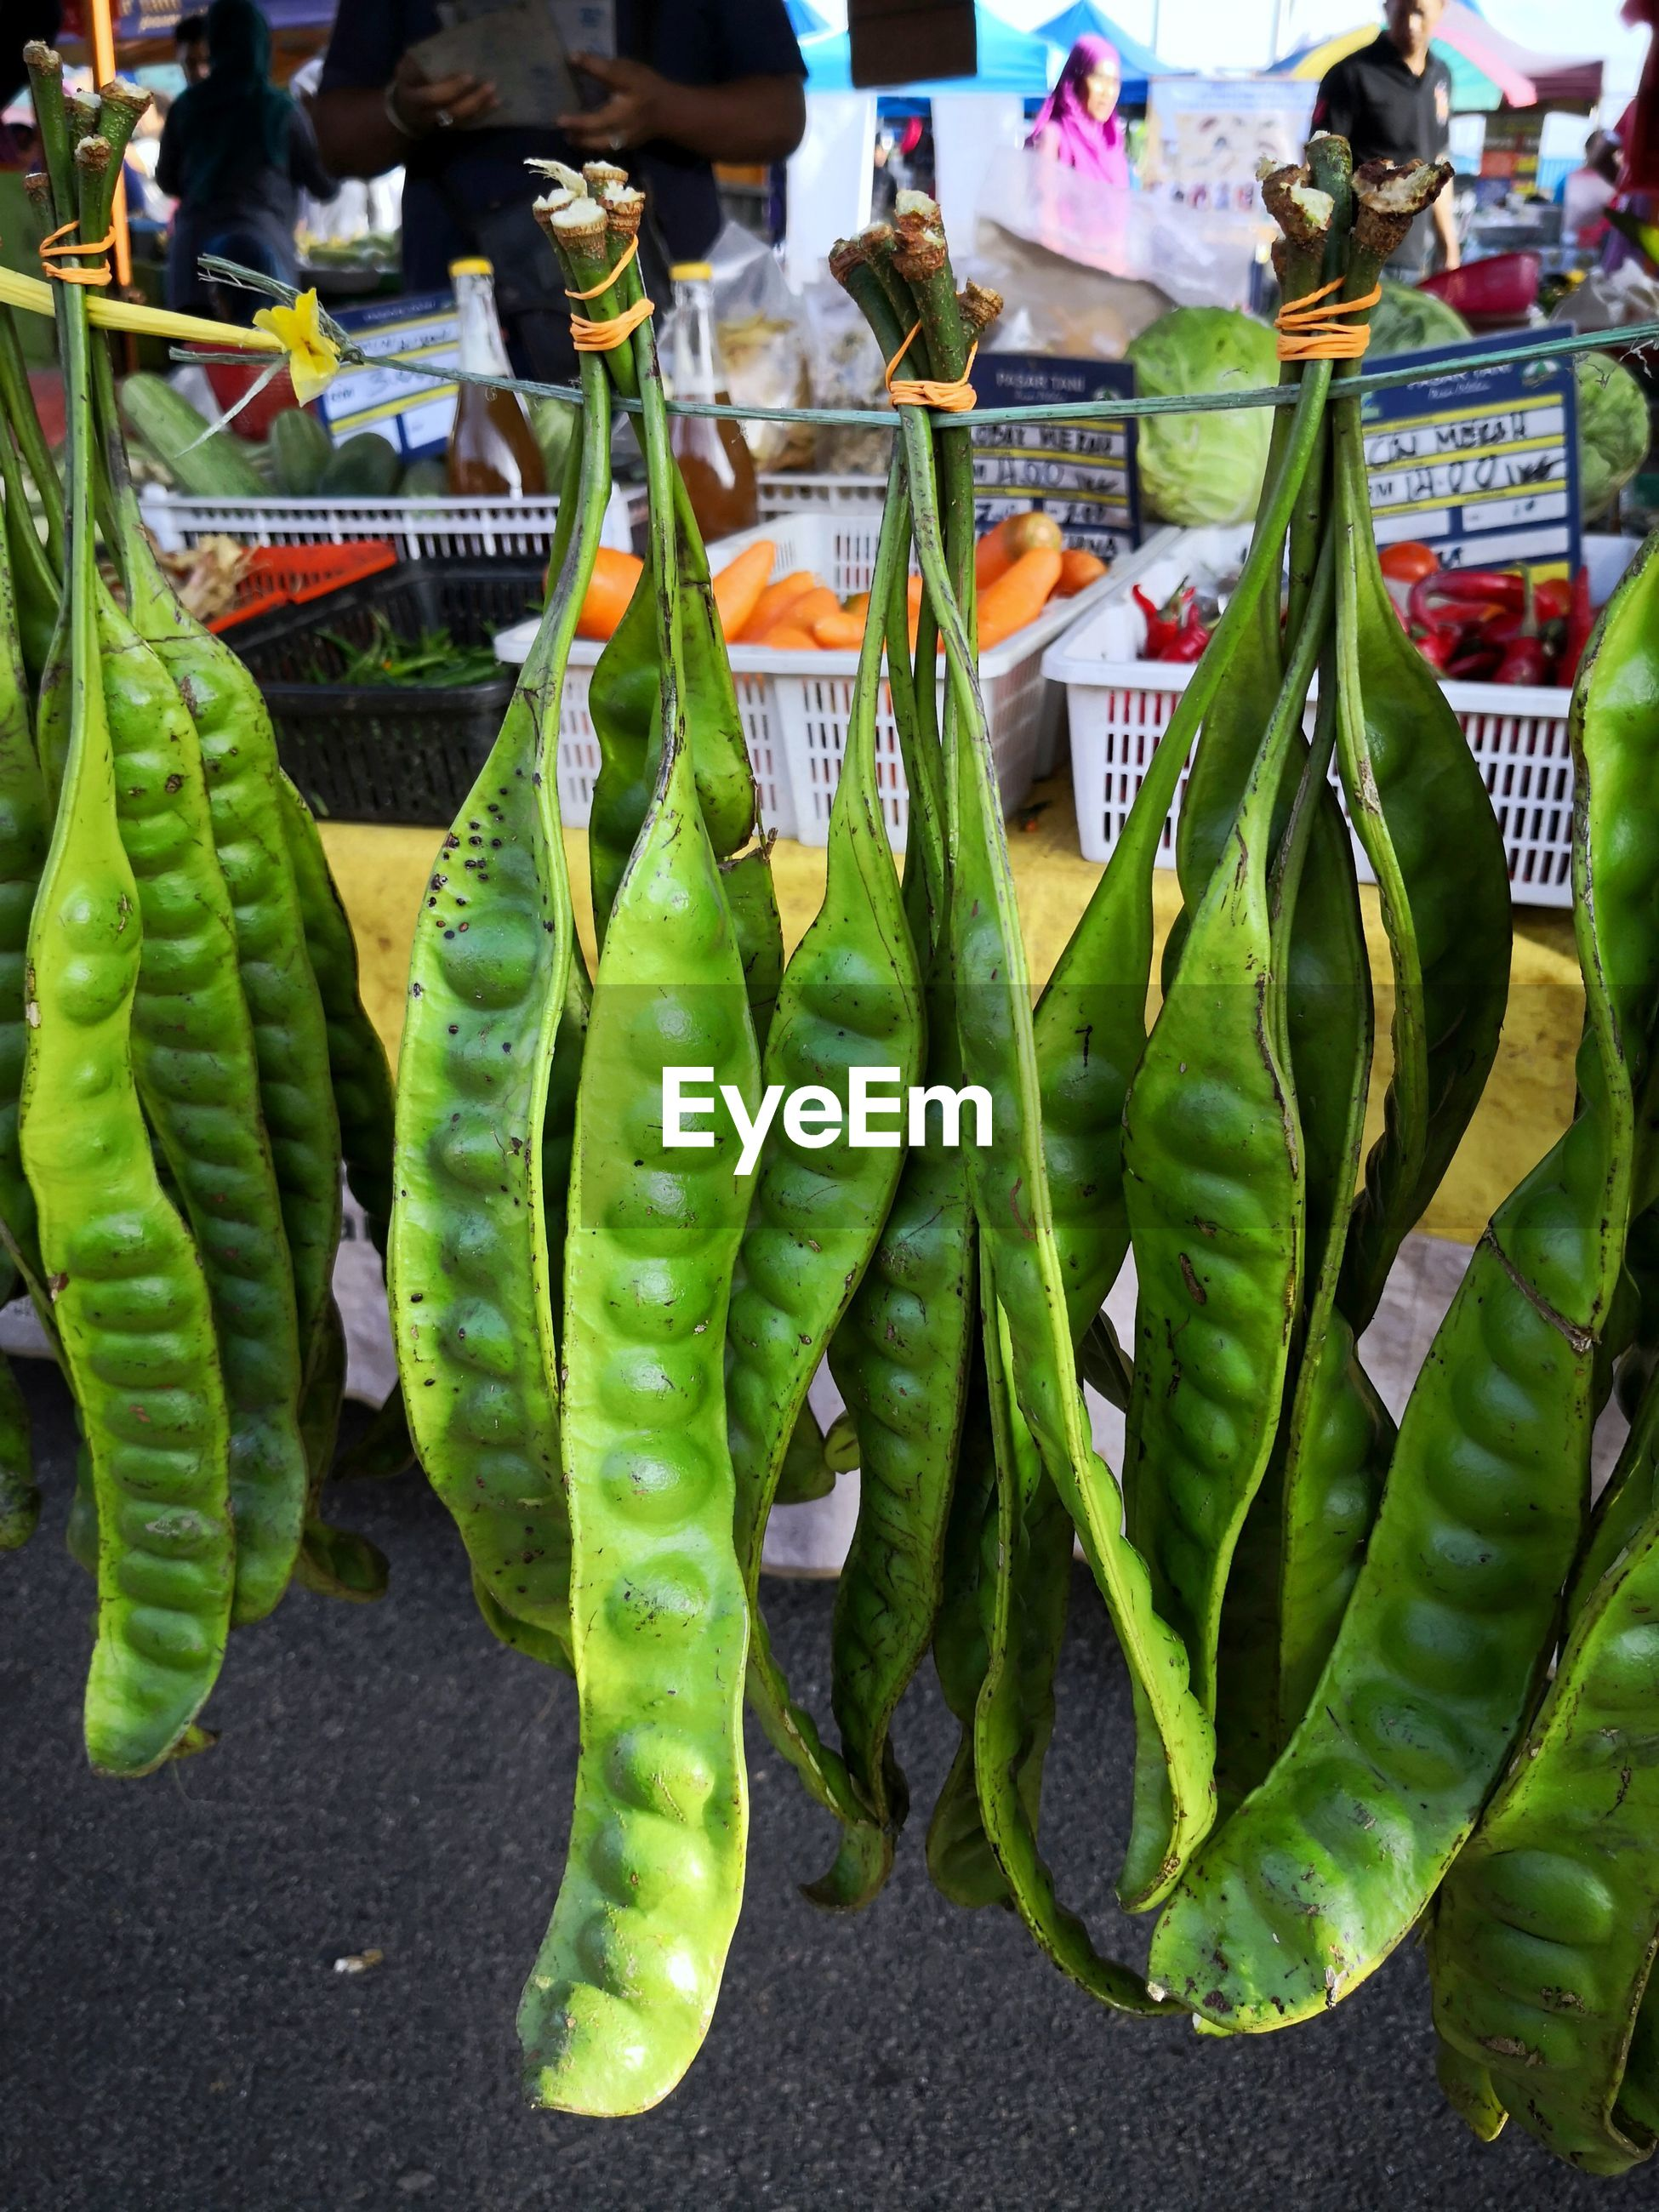 CLOSE-UP OF VEGETABLES FOR SALE